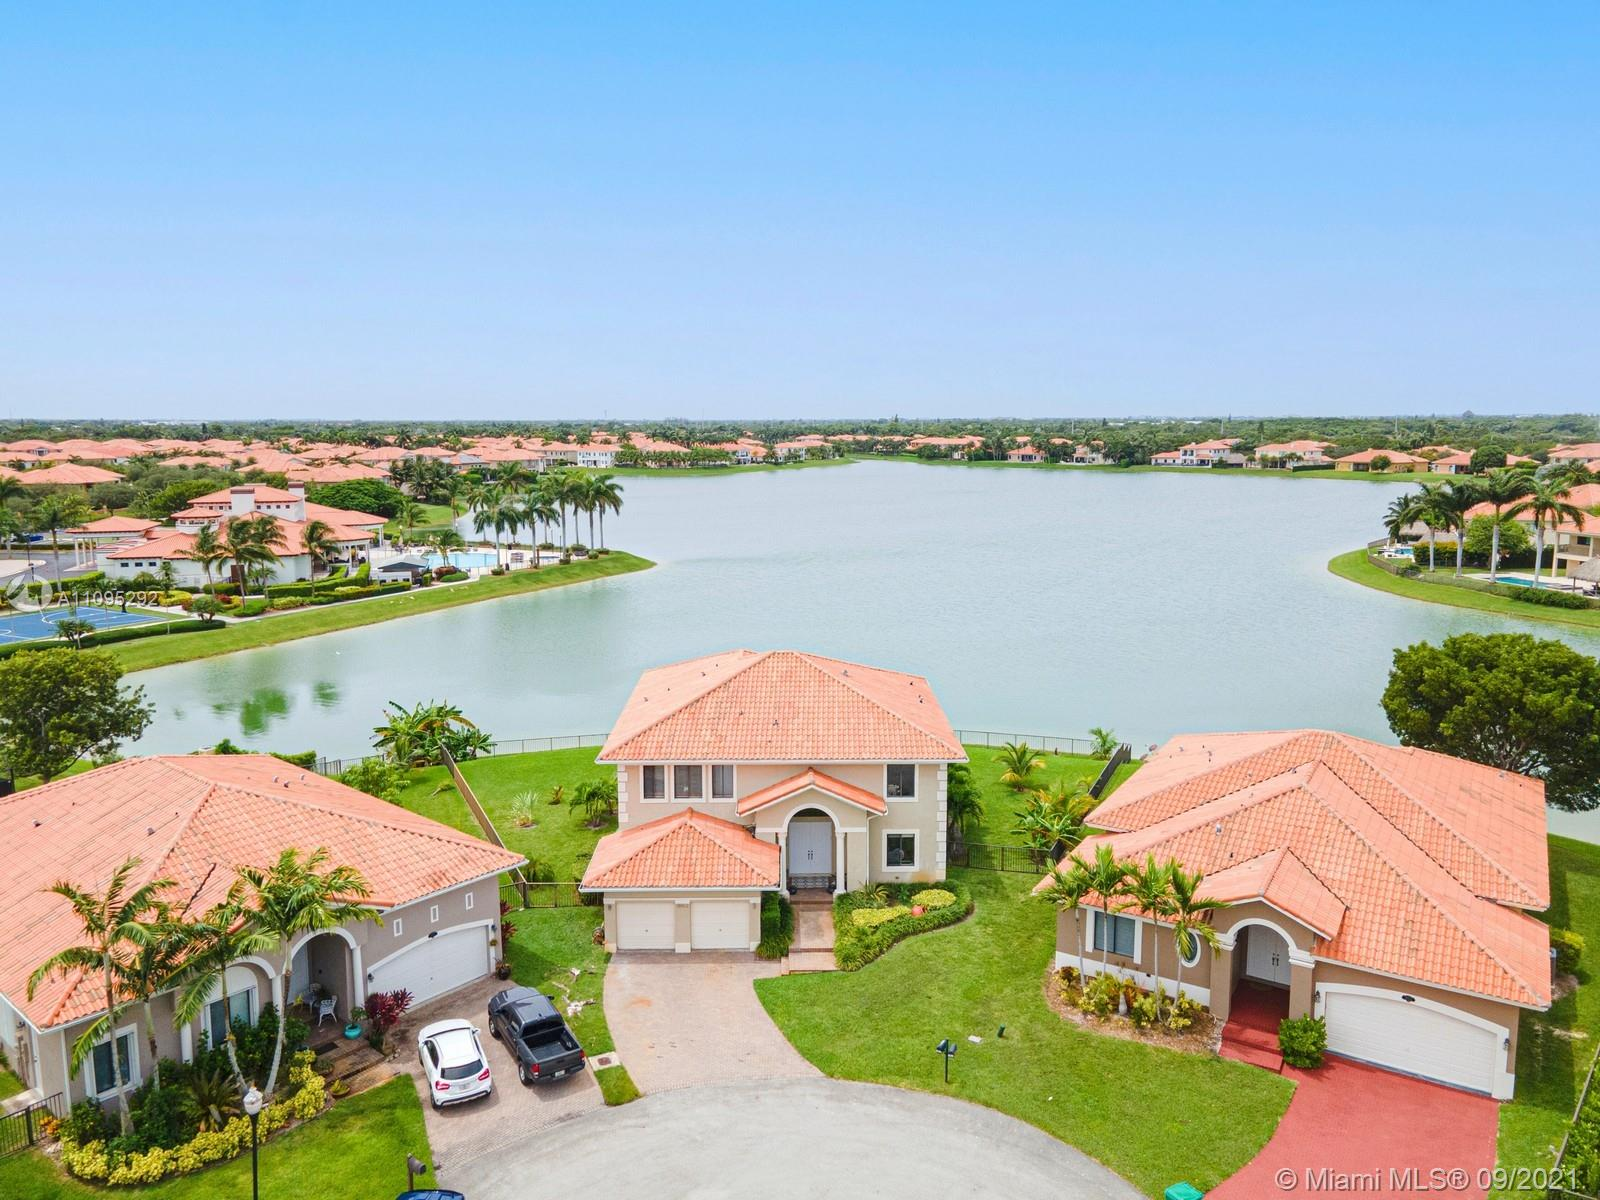 Rare opportunity to own a lakefront paradise in the gated resort style community of Cutler Cay. This spectacular 2 story home offers 5 beds, 4/1 baths, high volume ceilings, and breathtaking lake views from almost every room of the home. The home includes several elegant updates throughout, including the kitchen and bathrooms. Ground floor has 1 bedroom with a full bath, upstairs is the Master Bedroom with additional 3 Bedrooms. Master Suite includes a seating area, large walk in closet, 2 smaller closets, 2 bathrooms, & stunning lake views from the large balcony and from your tub. This is your chance to wake up to water views everyday! Located on a cul-de-sac just a short walk away from the Prestigious Clubhouse which includes, gym, heated pool, playground, tennis and basketball courts.